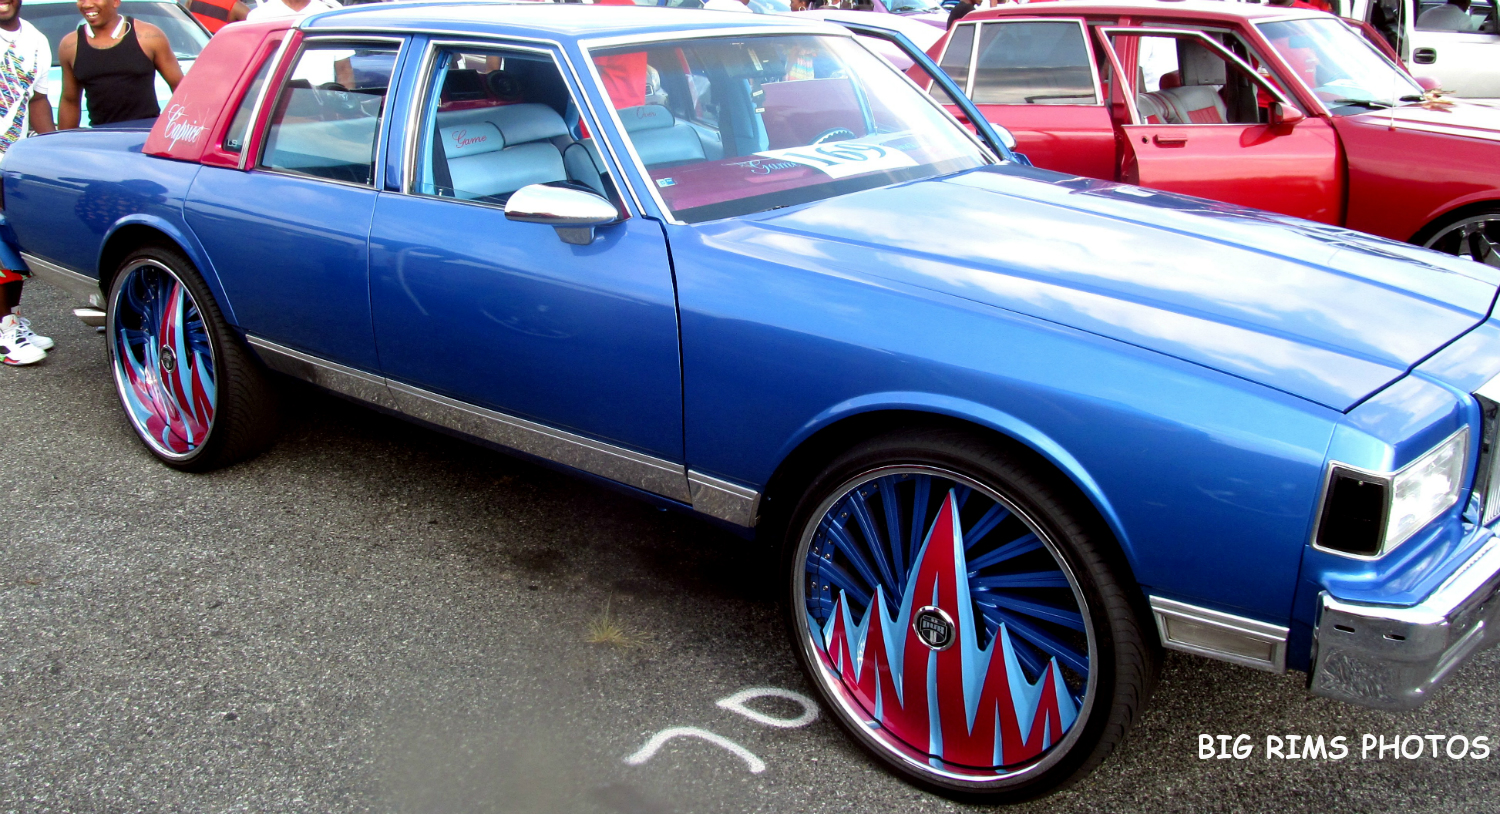 Watch further 4884293028 furthermore Watch besides Watch additionally 17. on chevy impala on 24 inch rims